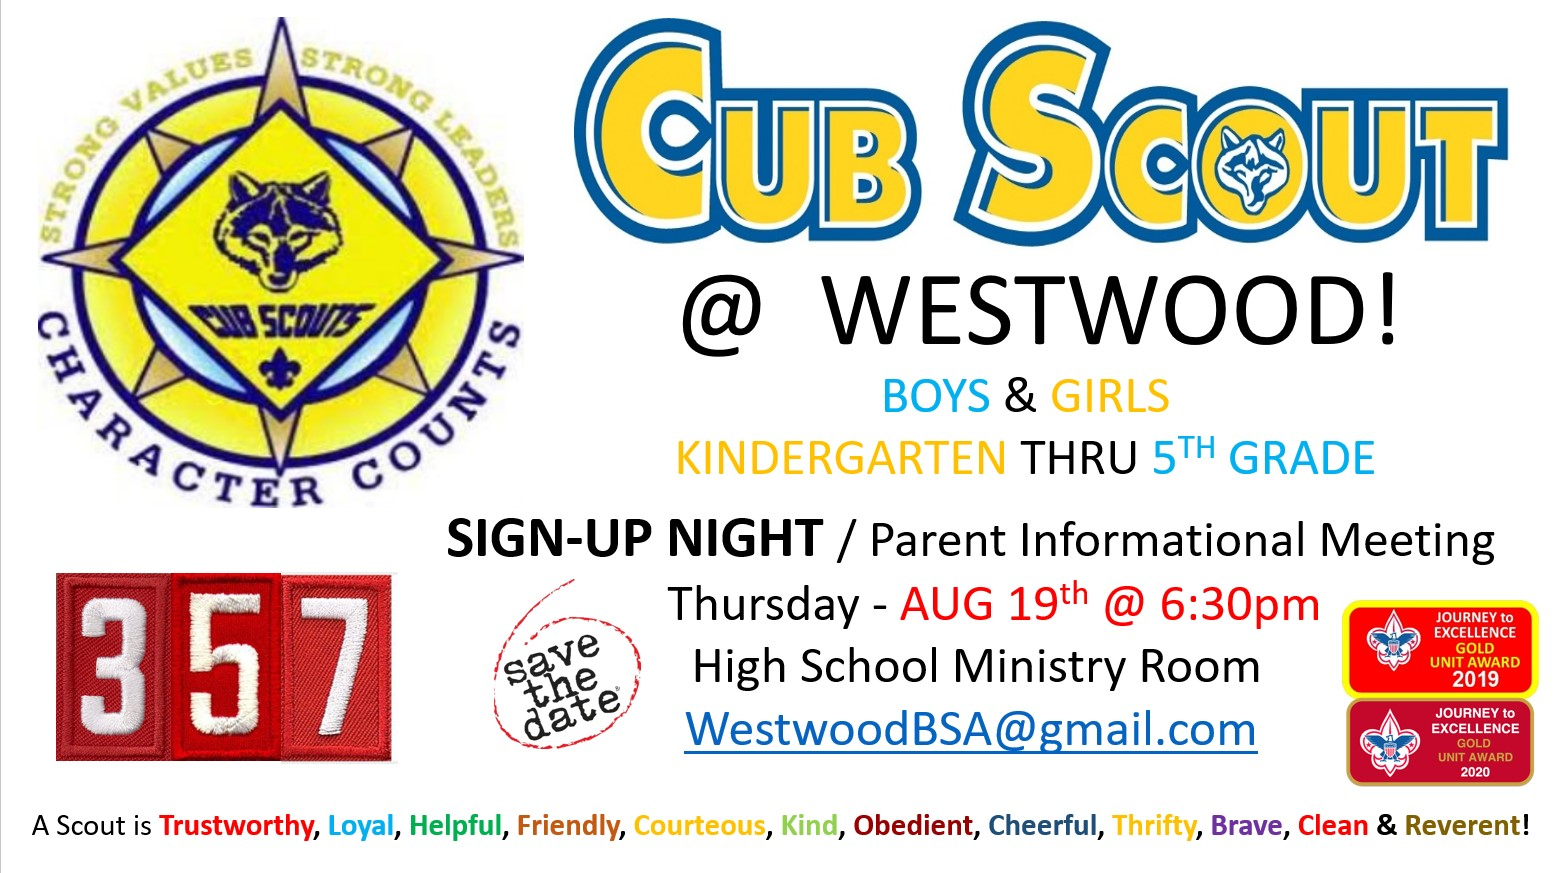 Cub Scout Sign-Up Night